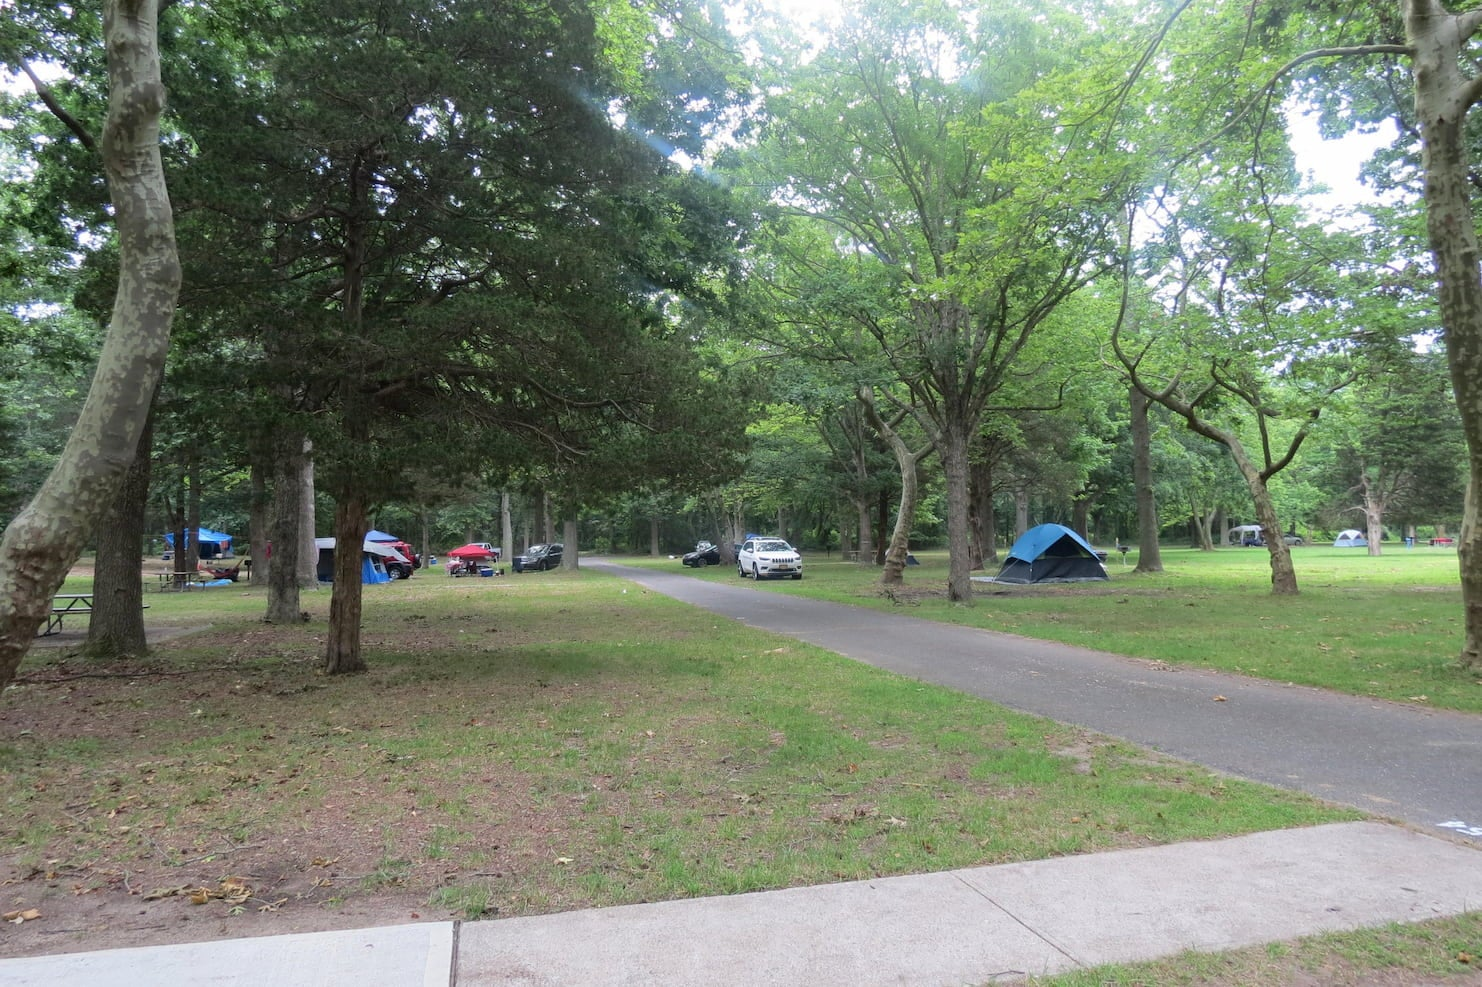 Forested campground with paved sidewalks running through it.